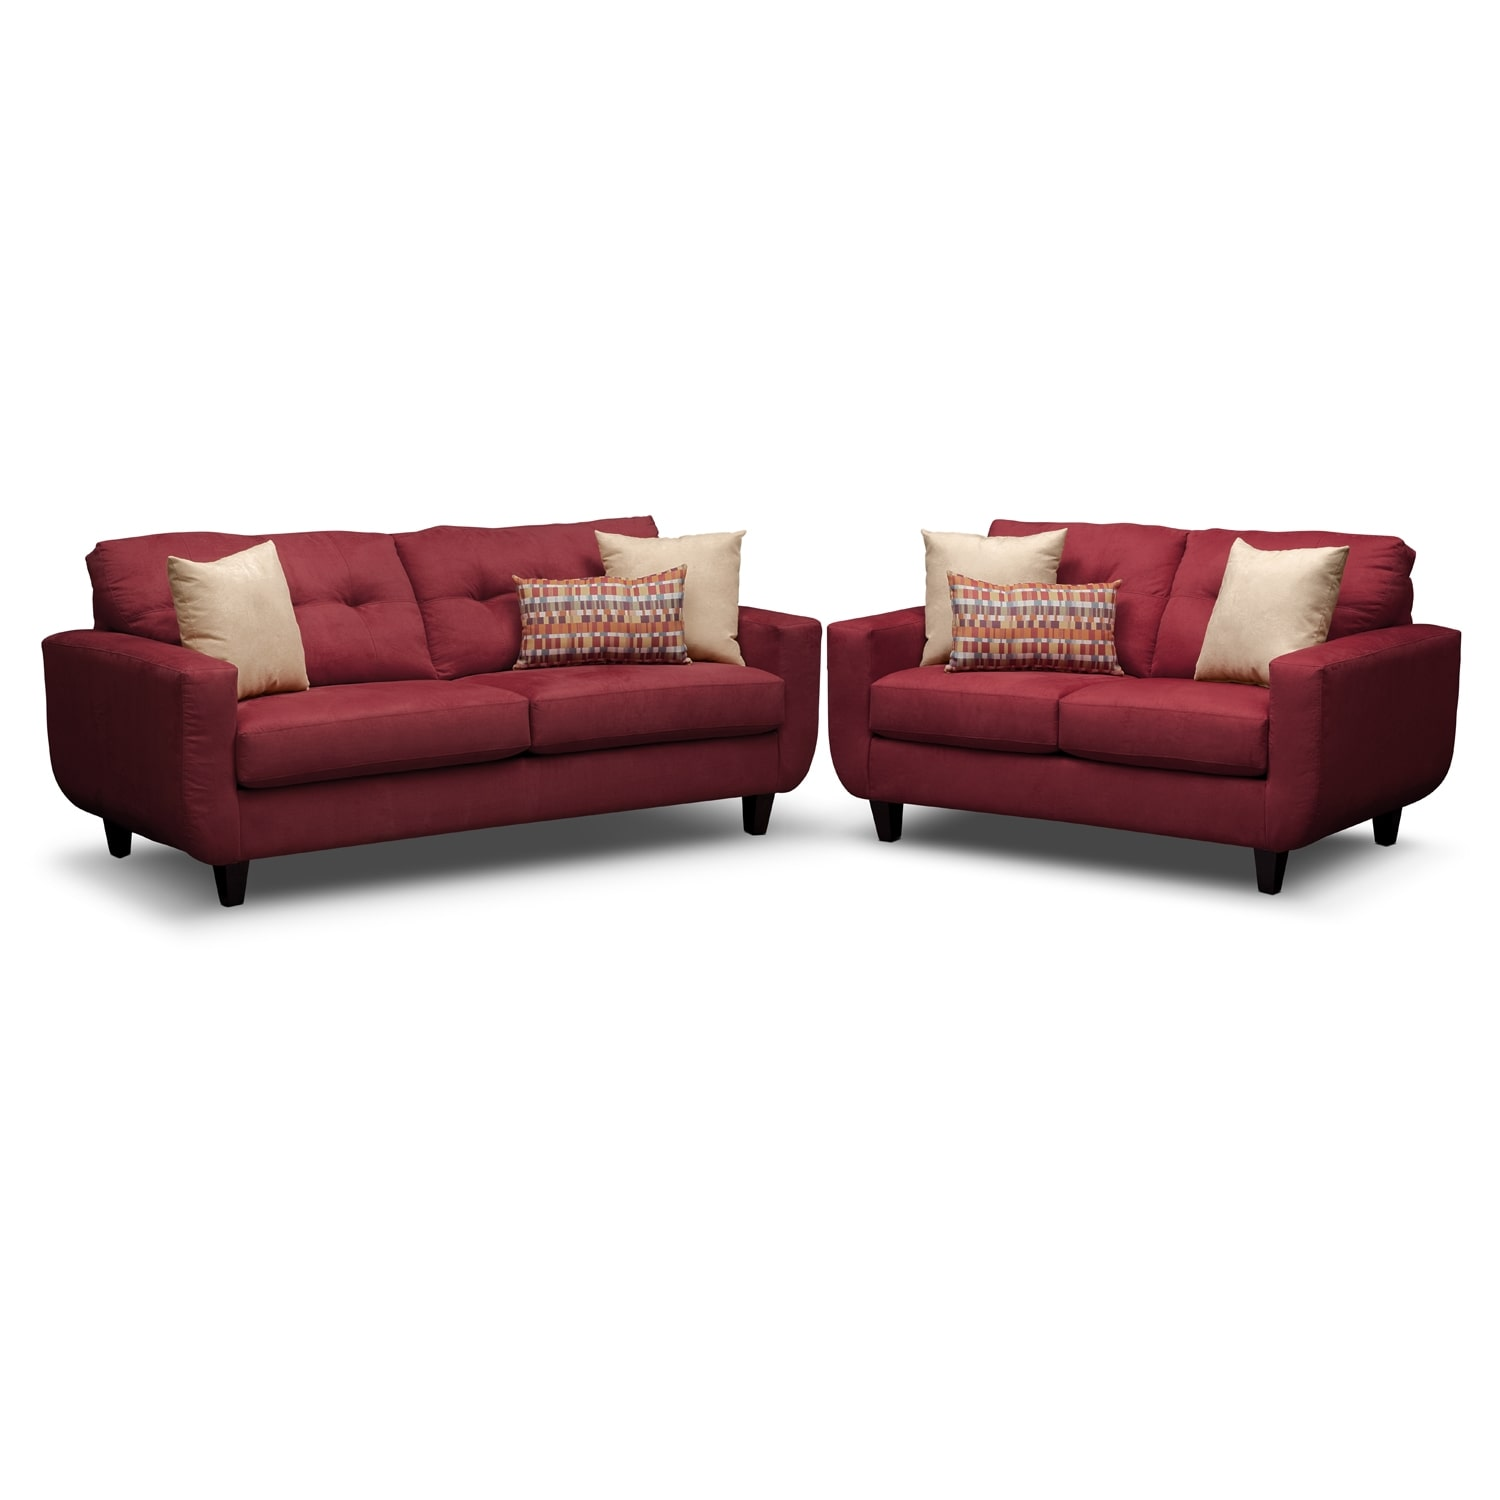 West Village Sofa and Loveseat Set - Red